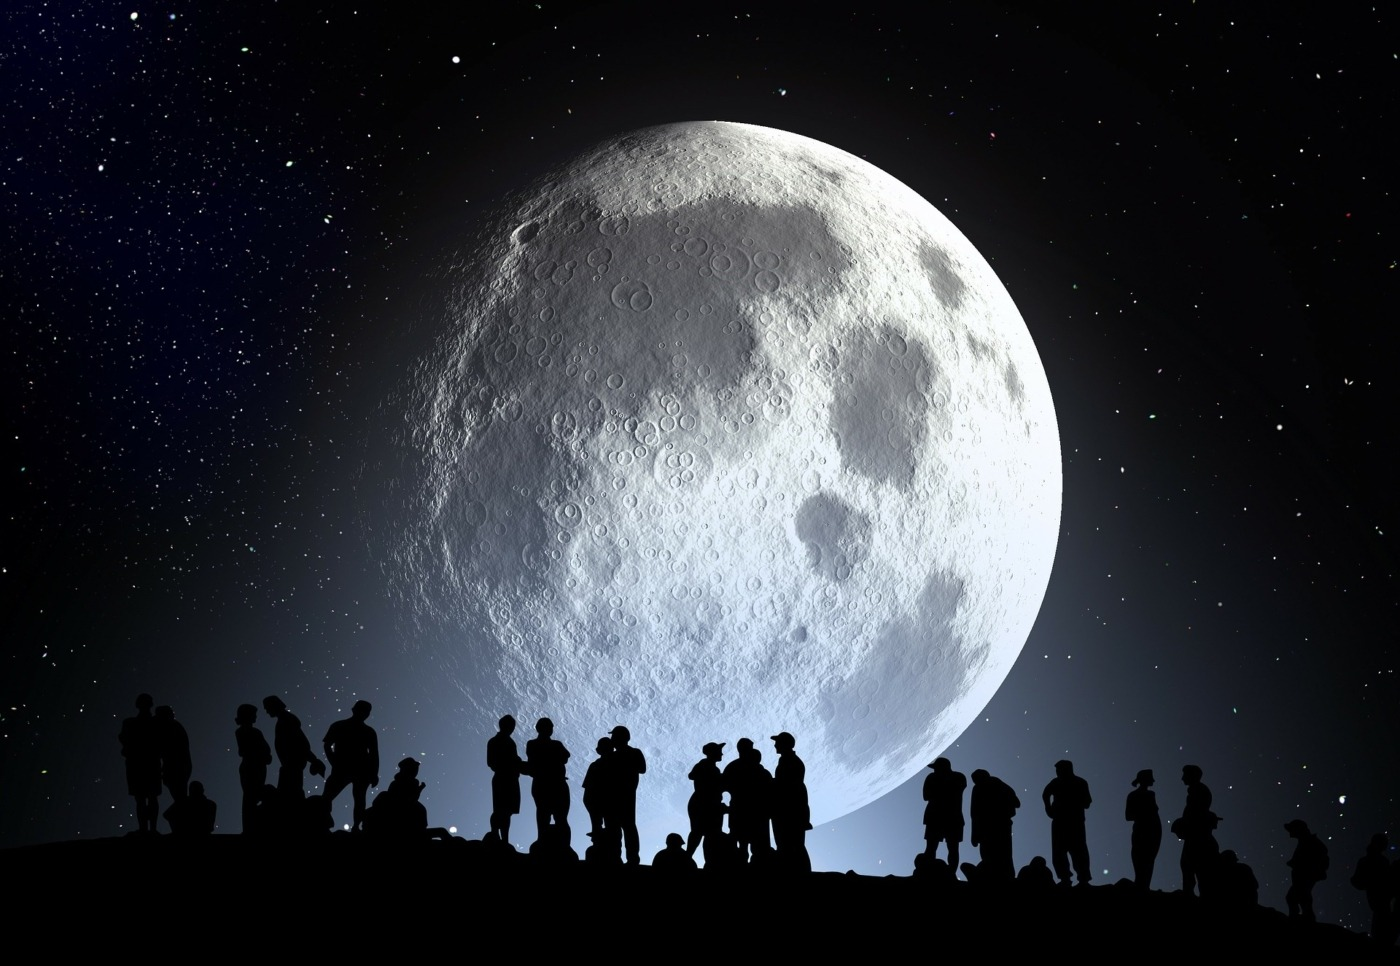 Scientists find water on sunlit surface of the moon